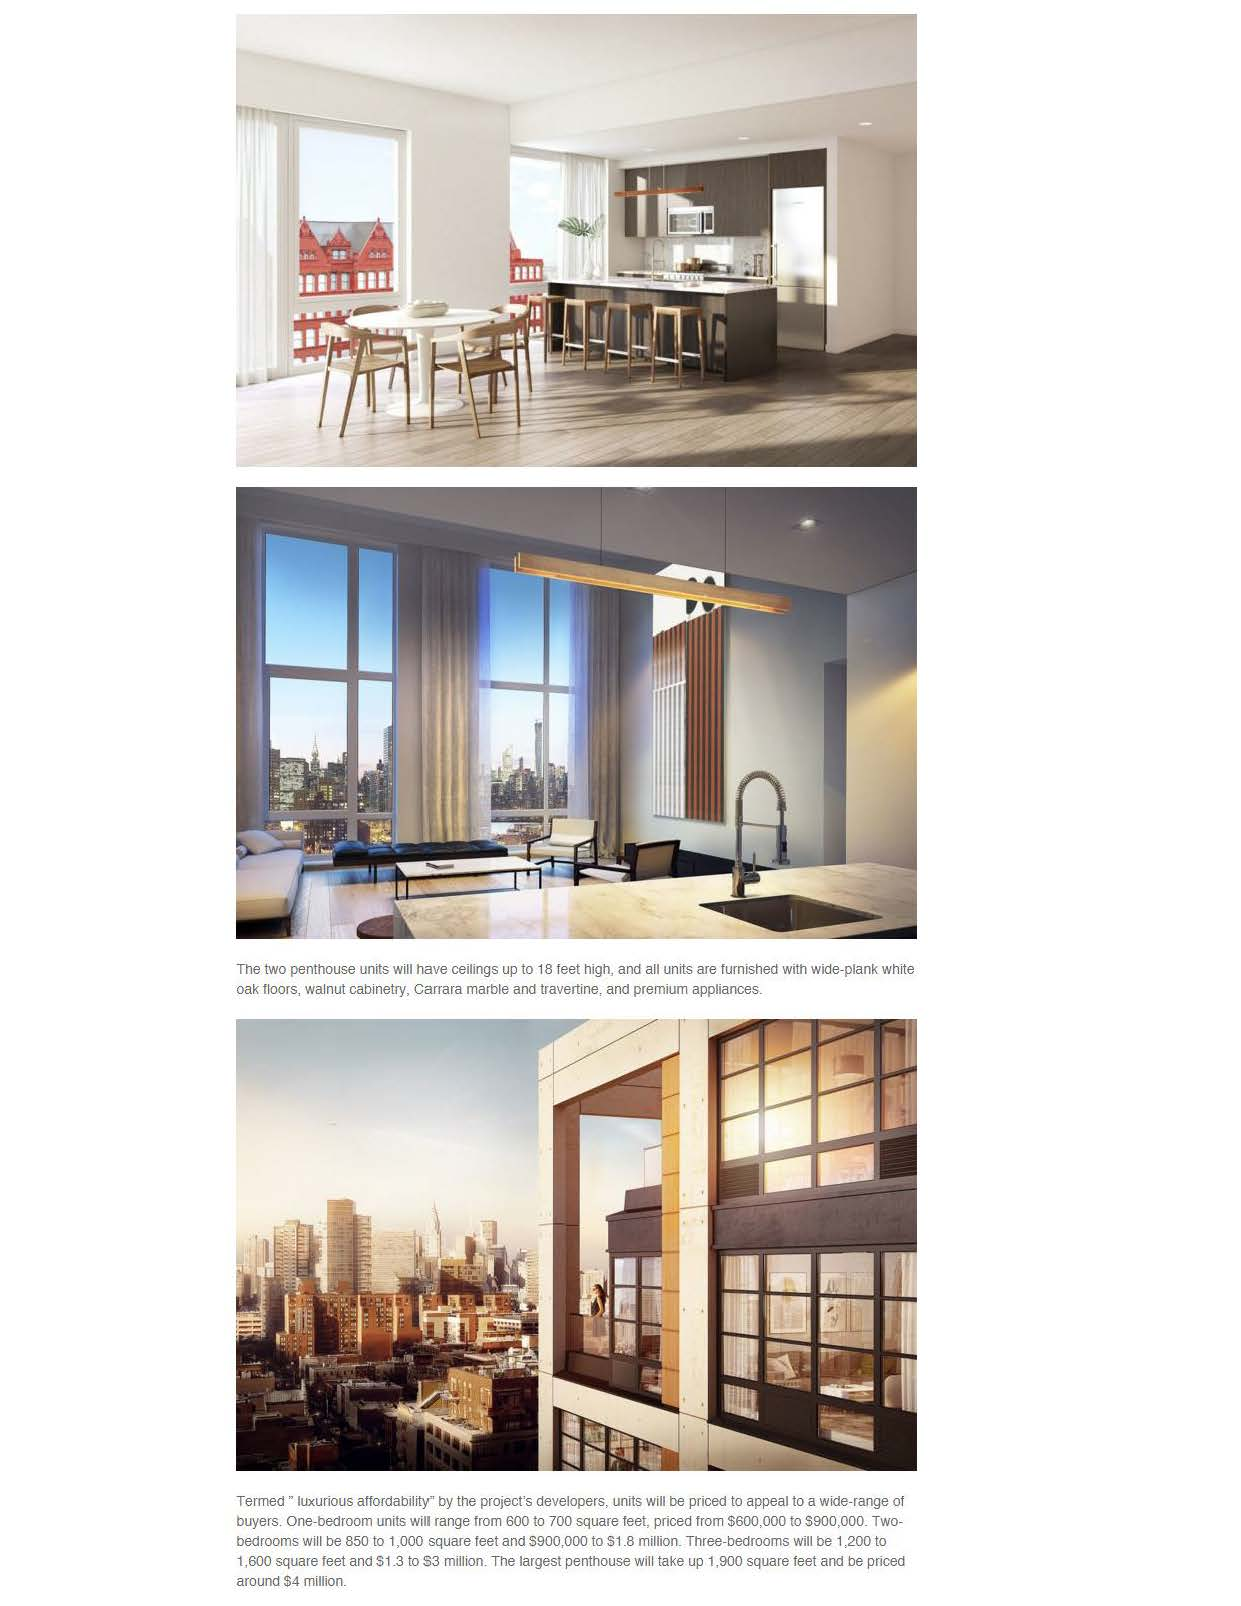 6sqft - Pricing and Renderings Released for The Jackson, Industrial-Inspired Condo in Long Island City - 2.22.16_Page_2